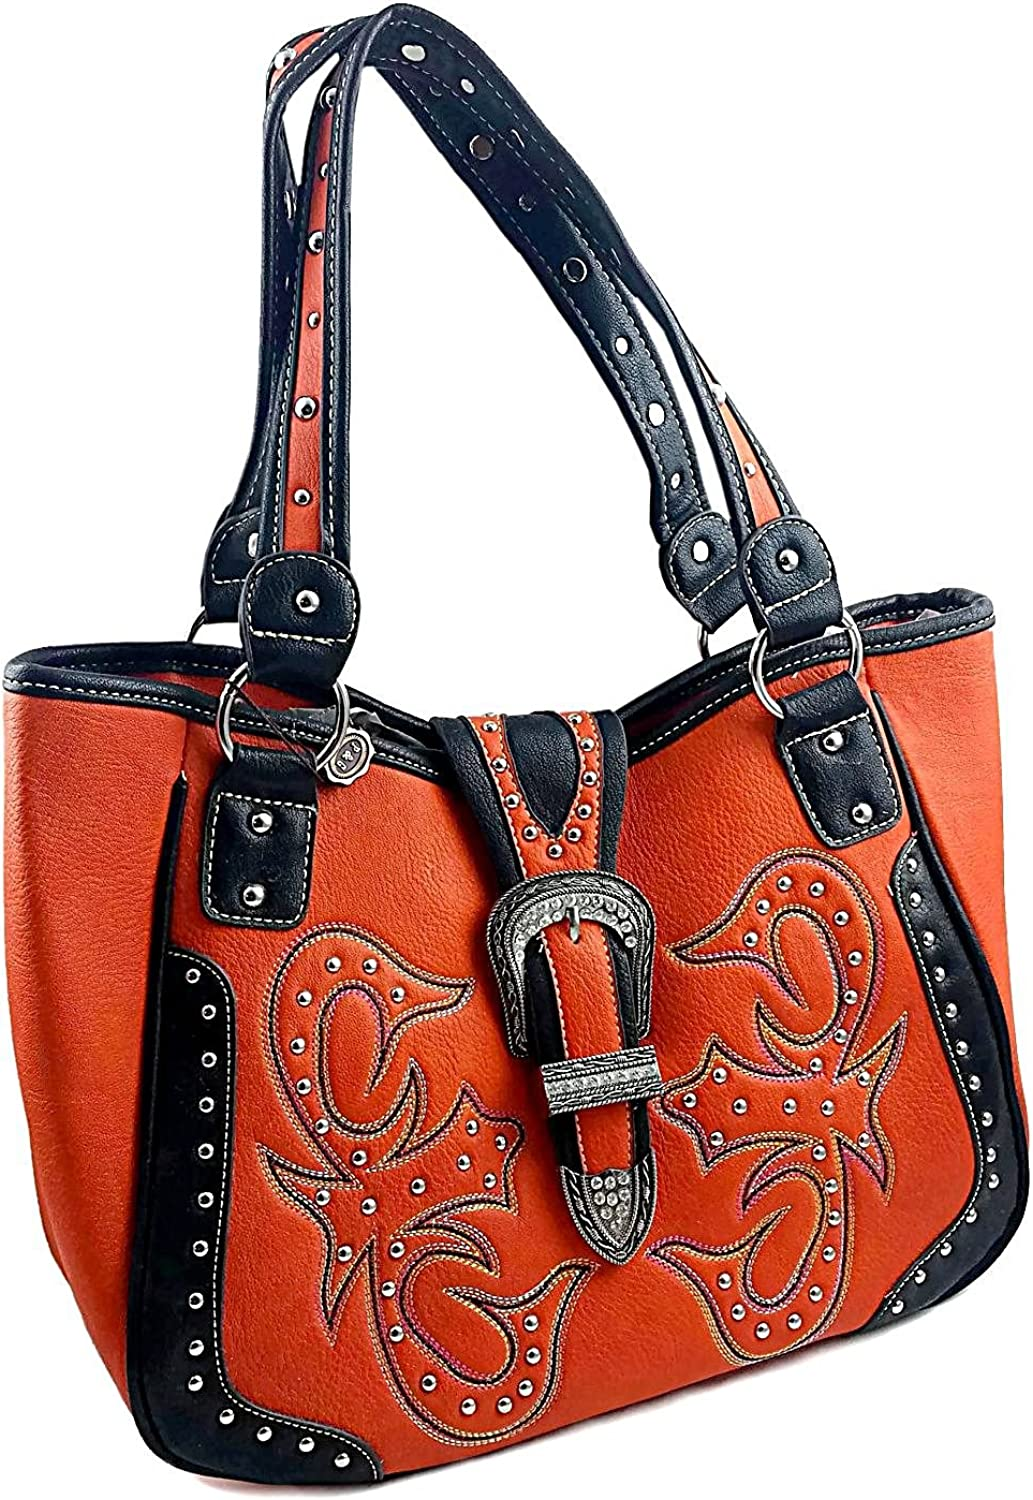 Leila 100% Leather Top Handle Handbag, West Design, Jeweled Accents & Buckle. Lined. Persimmon & Black